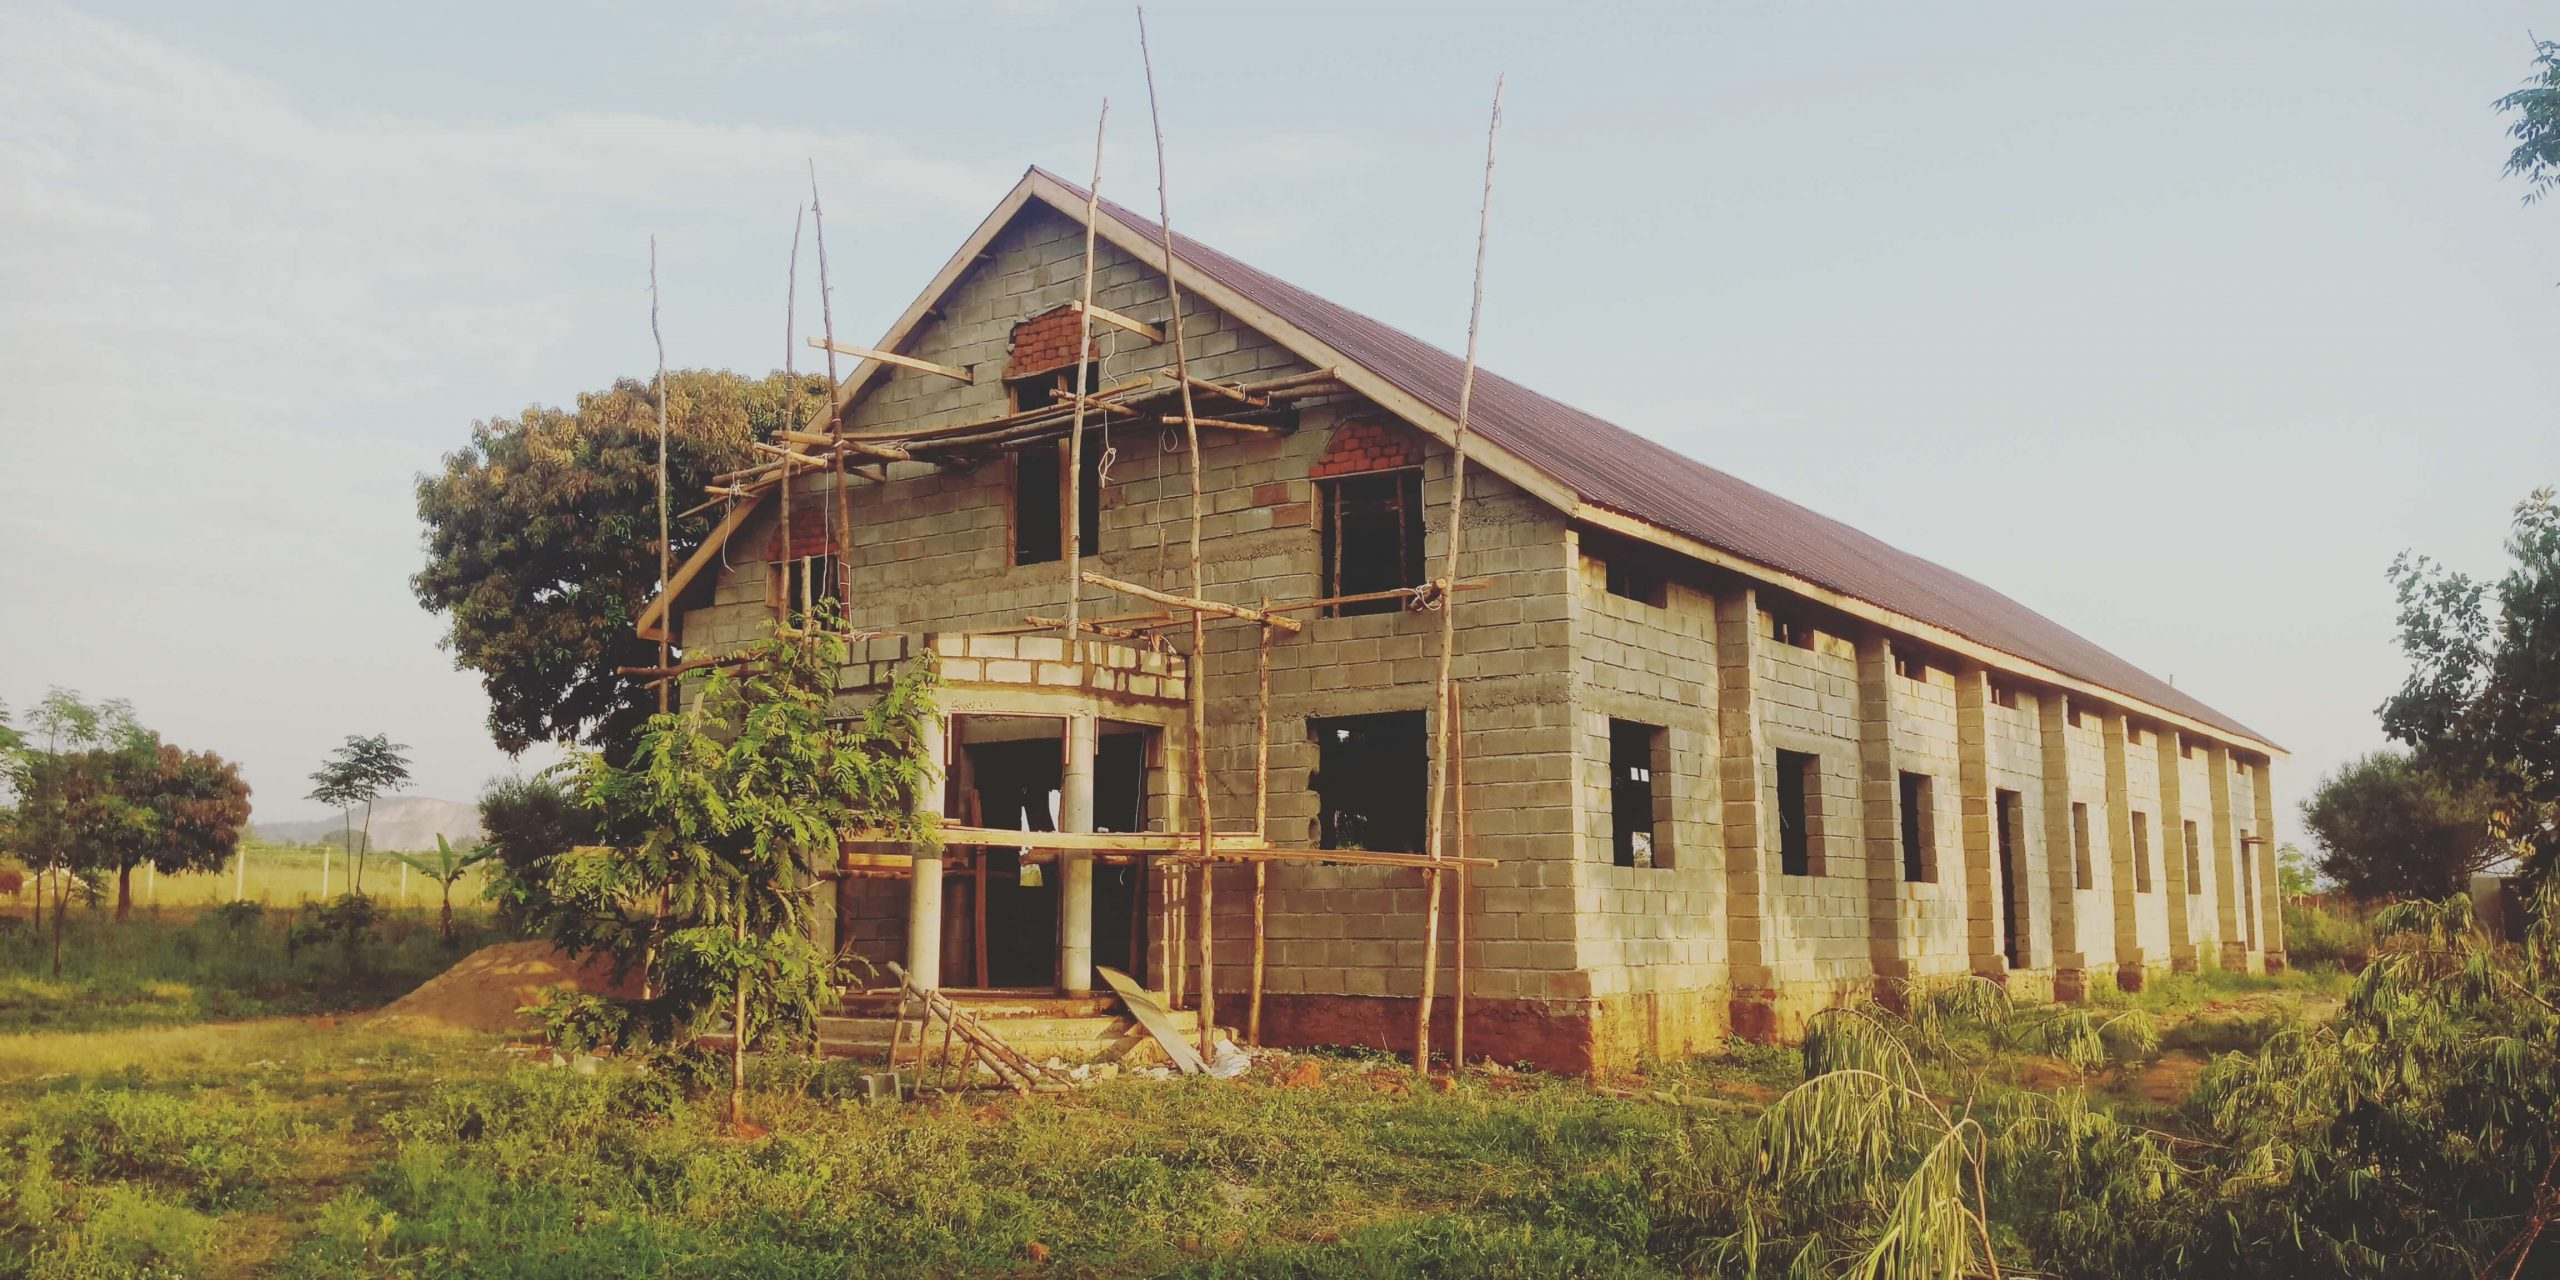 Uganda Church - Another view of the new roof